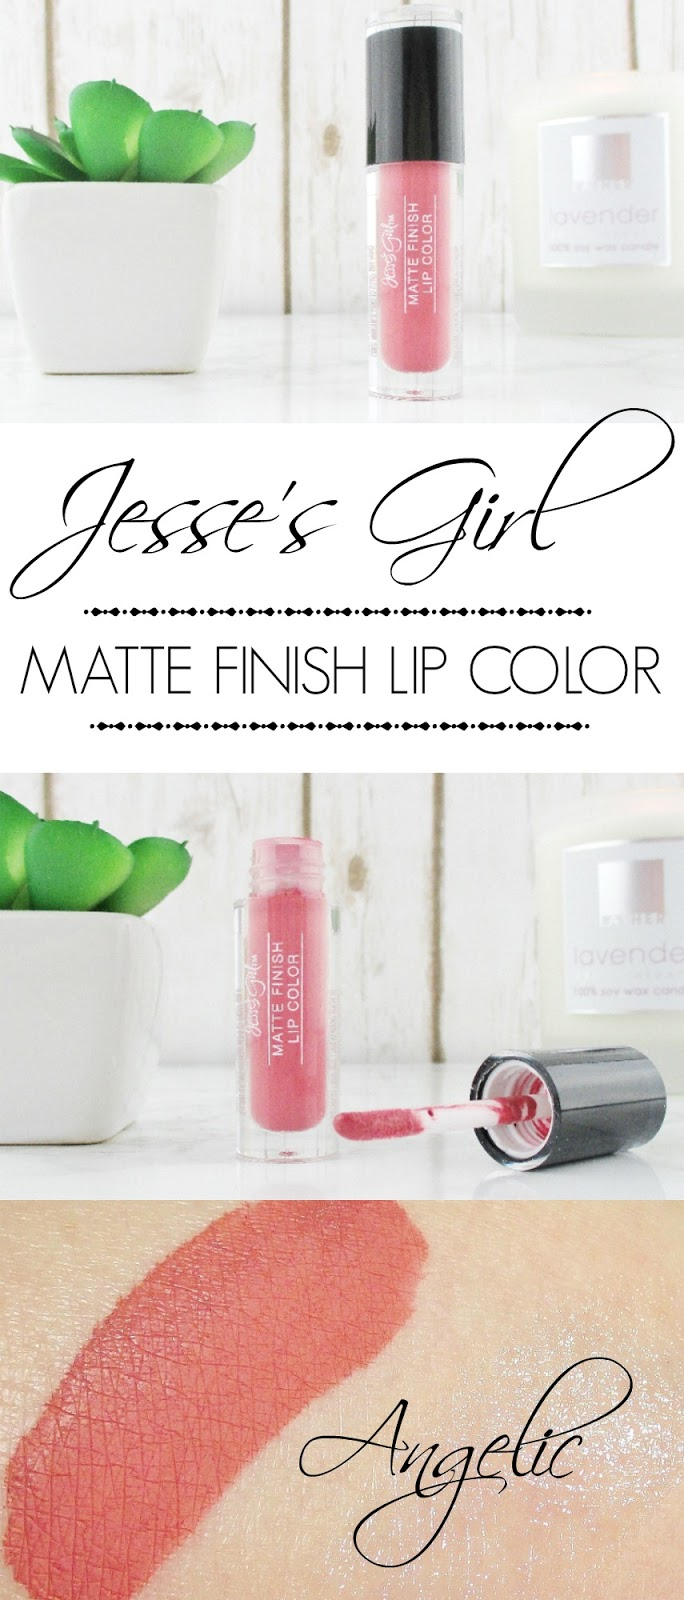 jesses-girl-matte-finish-lip-color-angelic-review-and-swatches